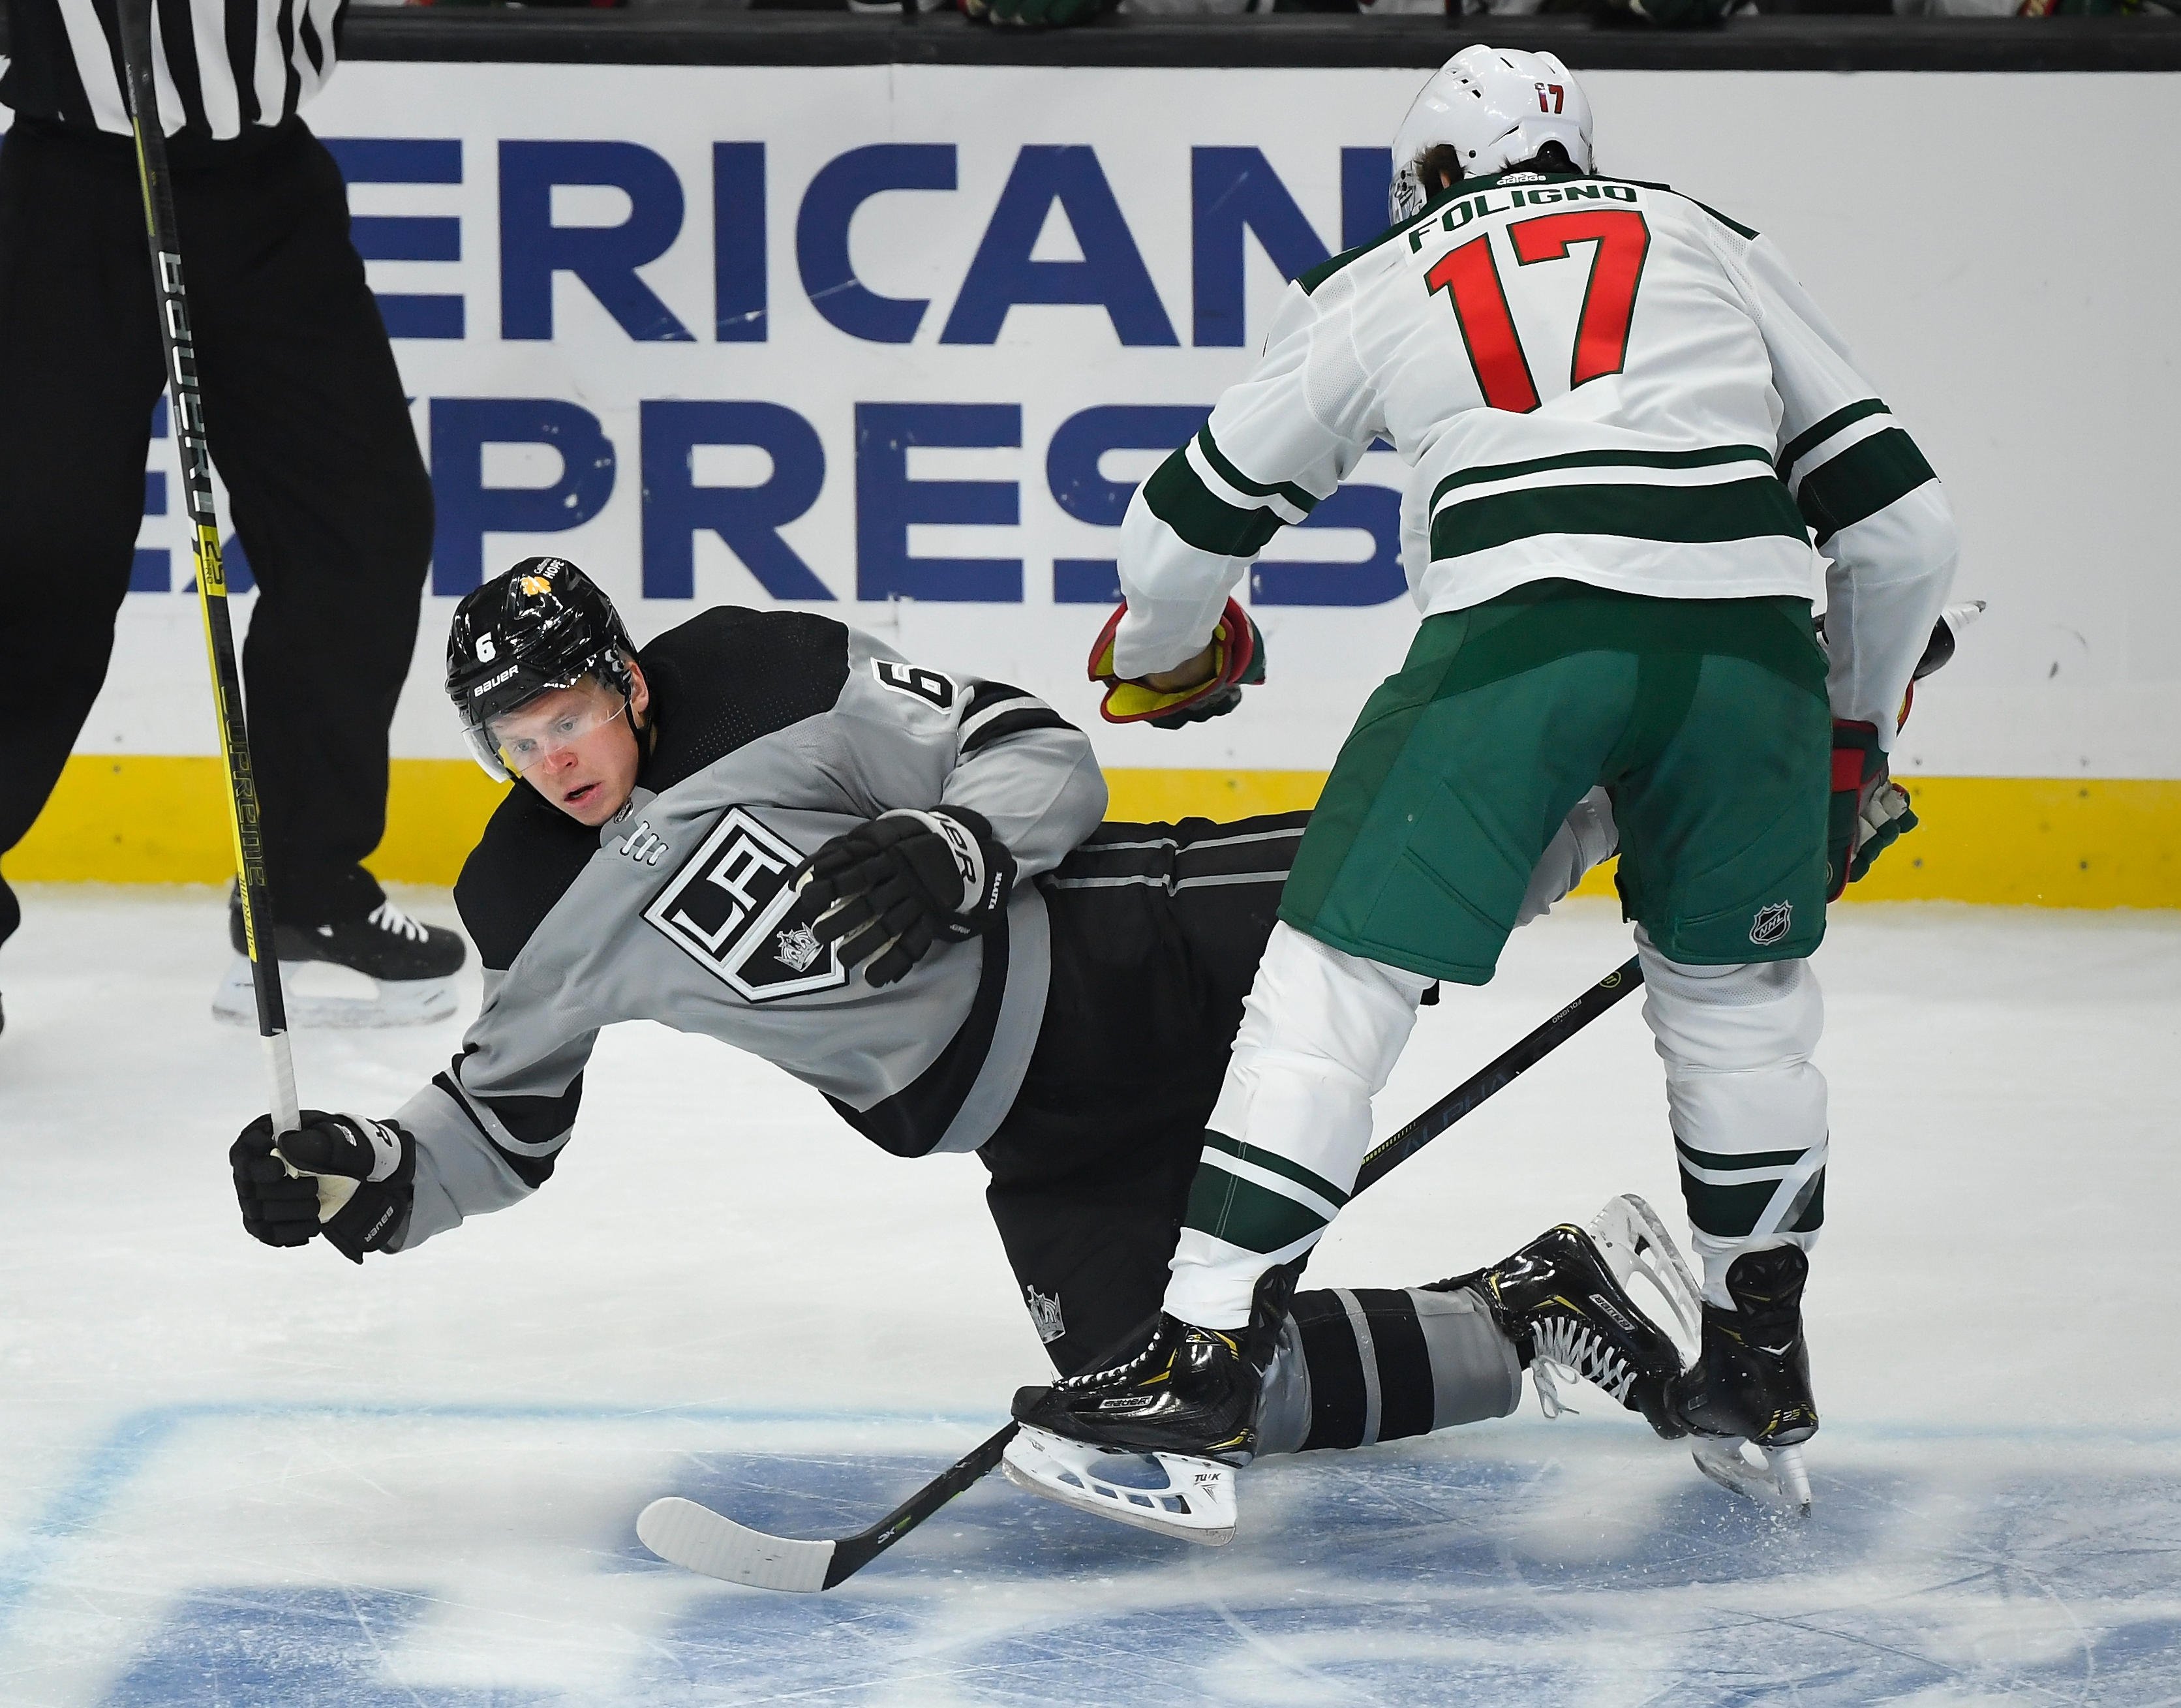 Game Preview: Minnesota Wild vs. Los Angeles Kings 1/28/21 @ 7:00PM CST at Xcel Energy Center